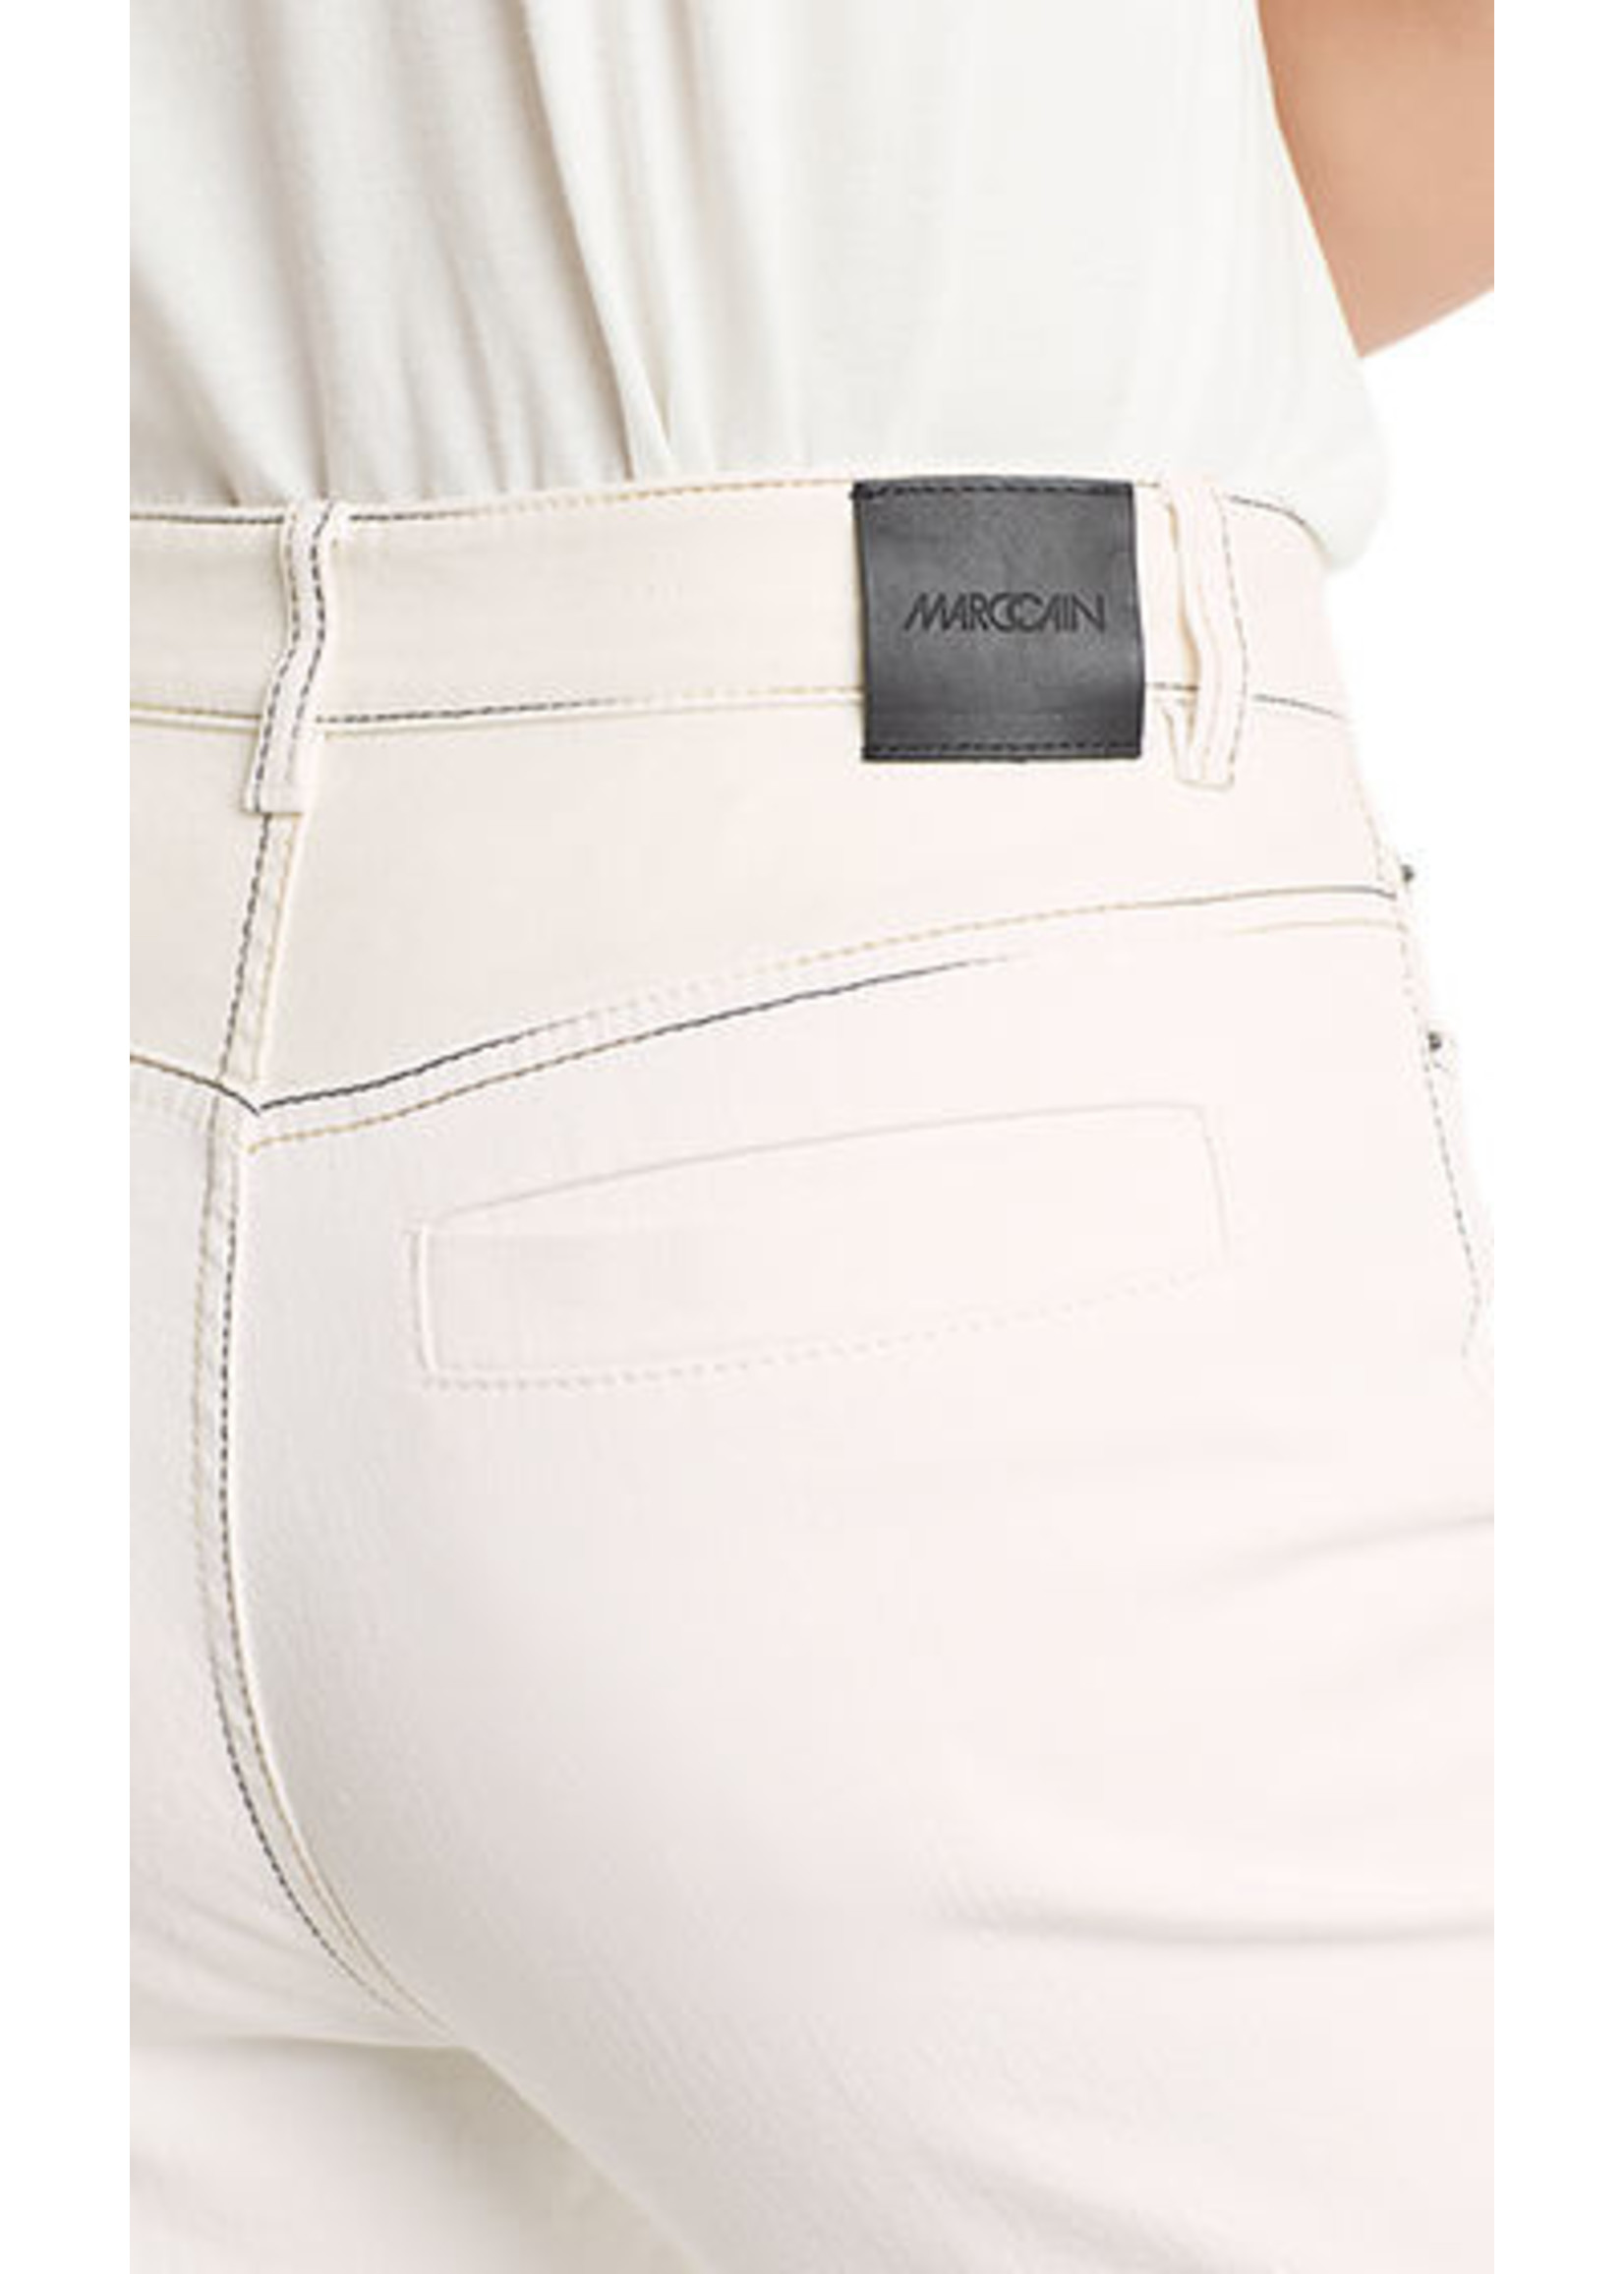 Marccain Sports Jeans RS 82.05 D02 off-white